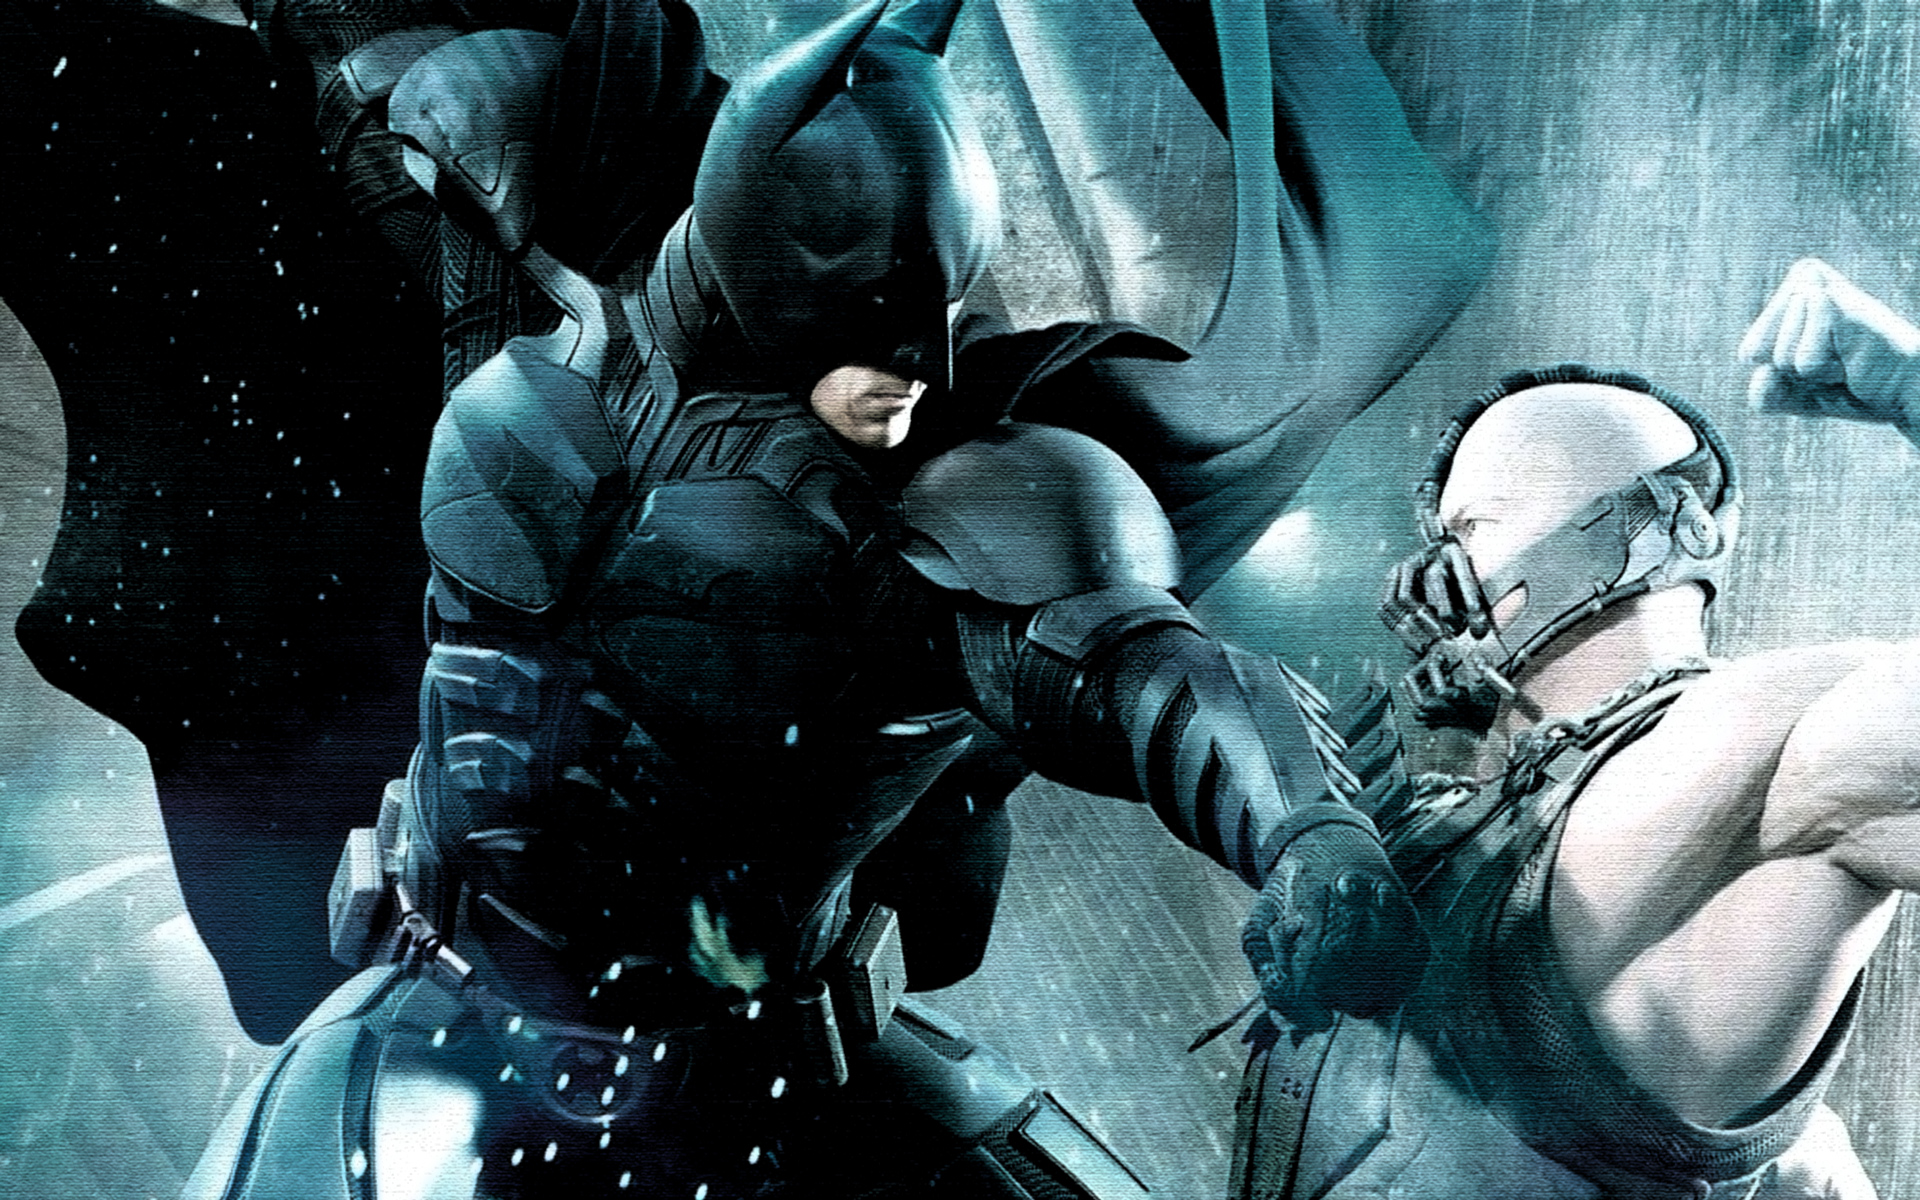 Batman Bane Fight Coming In High Quality And Resolution These Two